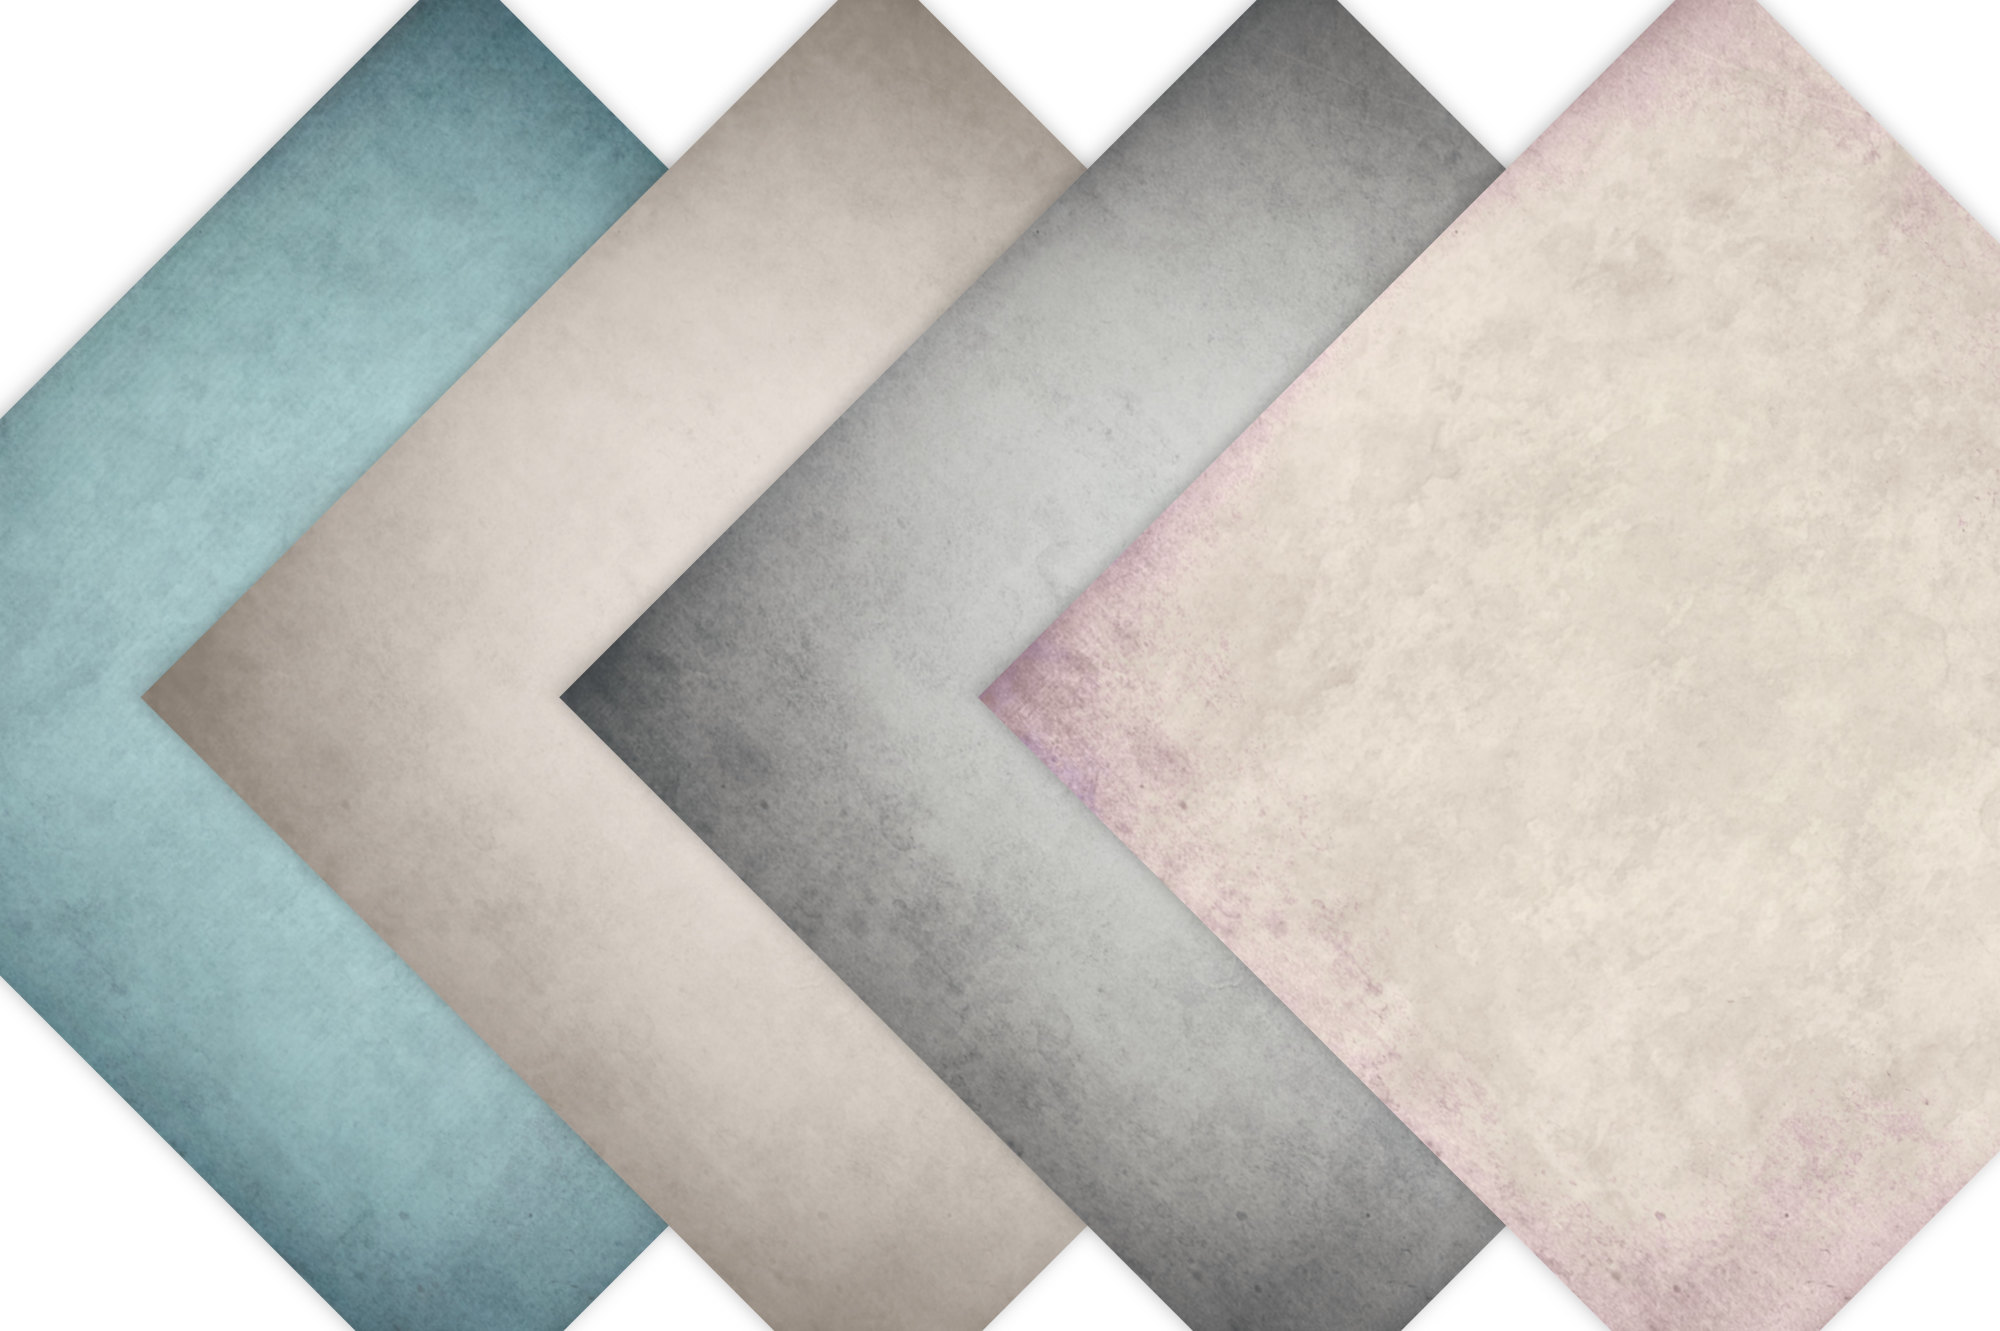 Vintage Paper Backgrounds - Textured Backgrounds in Shabby Chic Colors example image 6